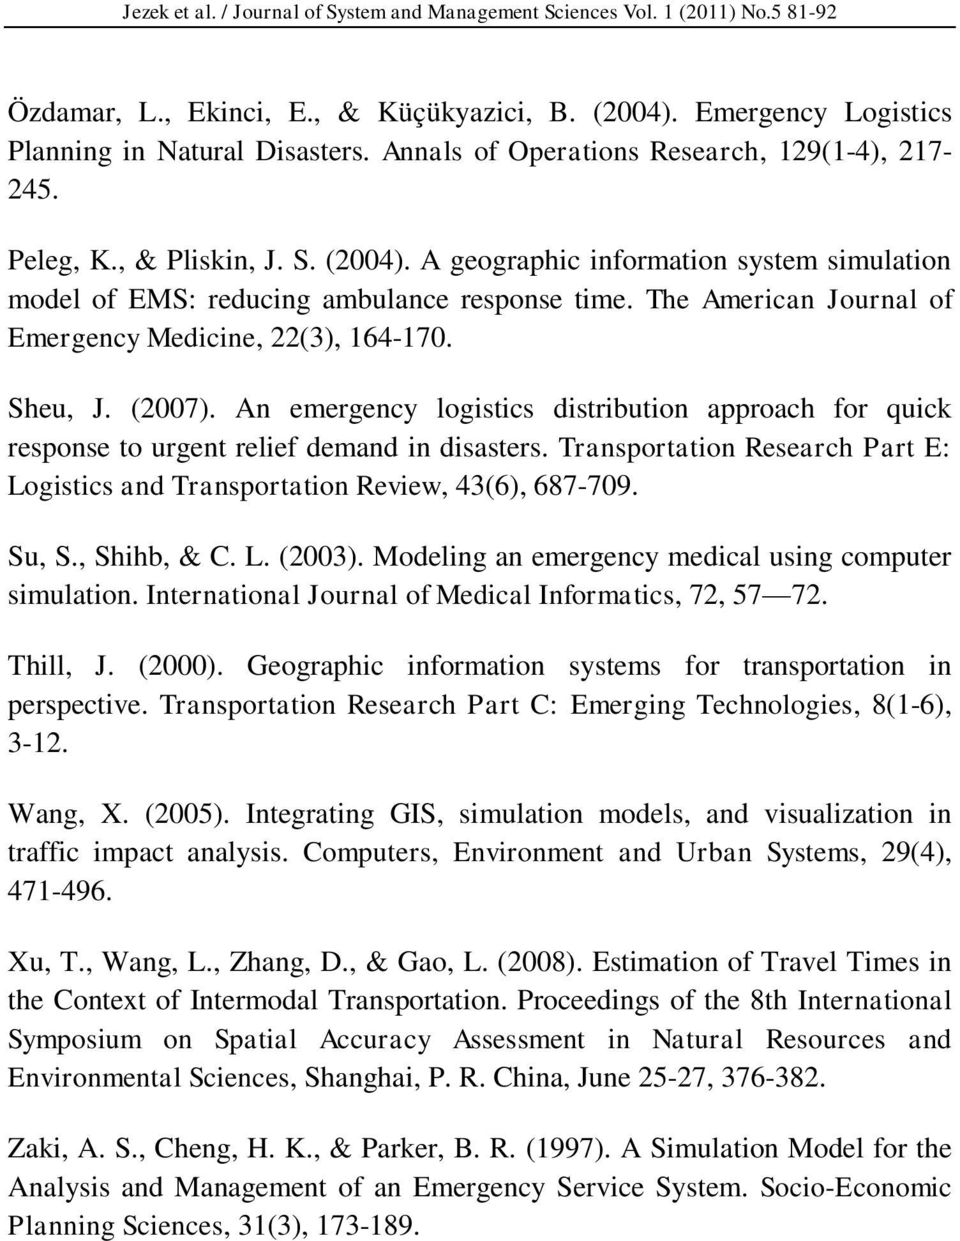 Transportation Research Part E: Logistics and Transportation Review, 43(6), 687-709. Su, S., Shihb, & C. L. (2003). Modeling an emergency medical using computer simulation.